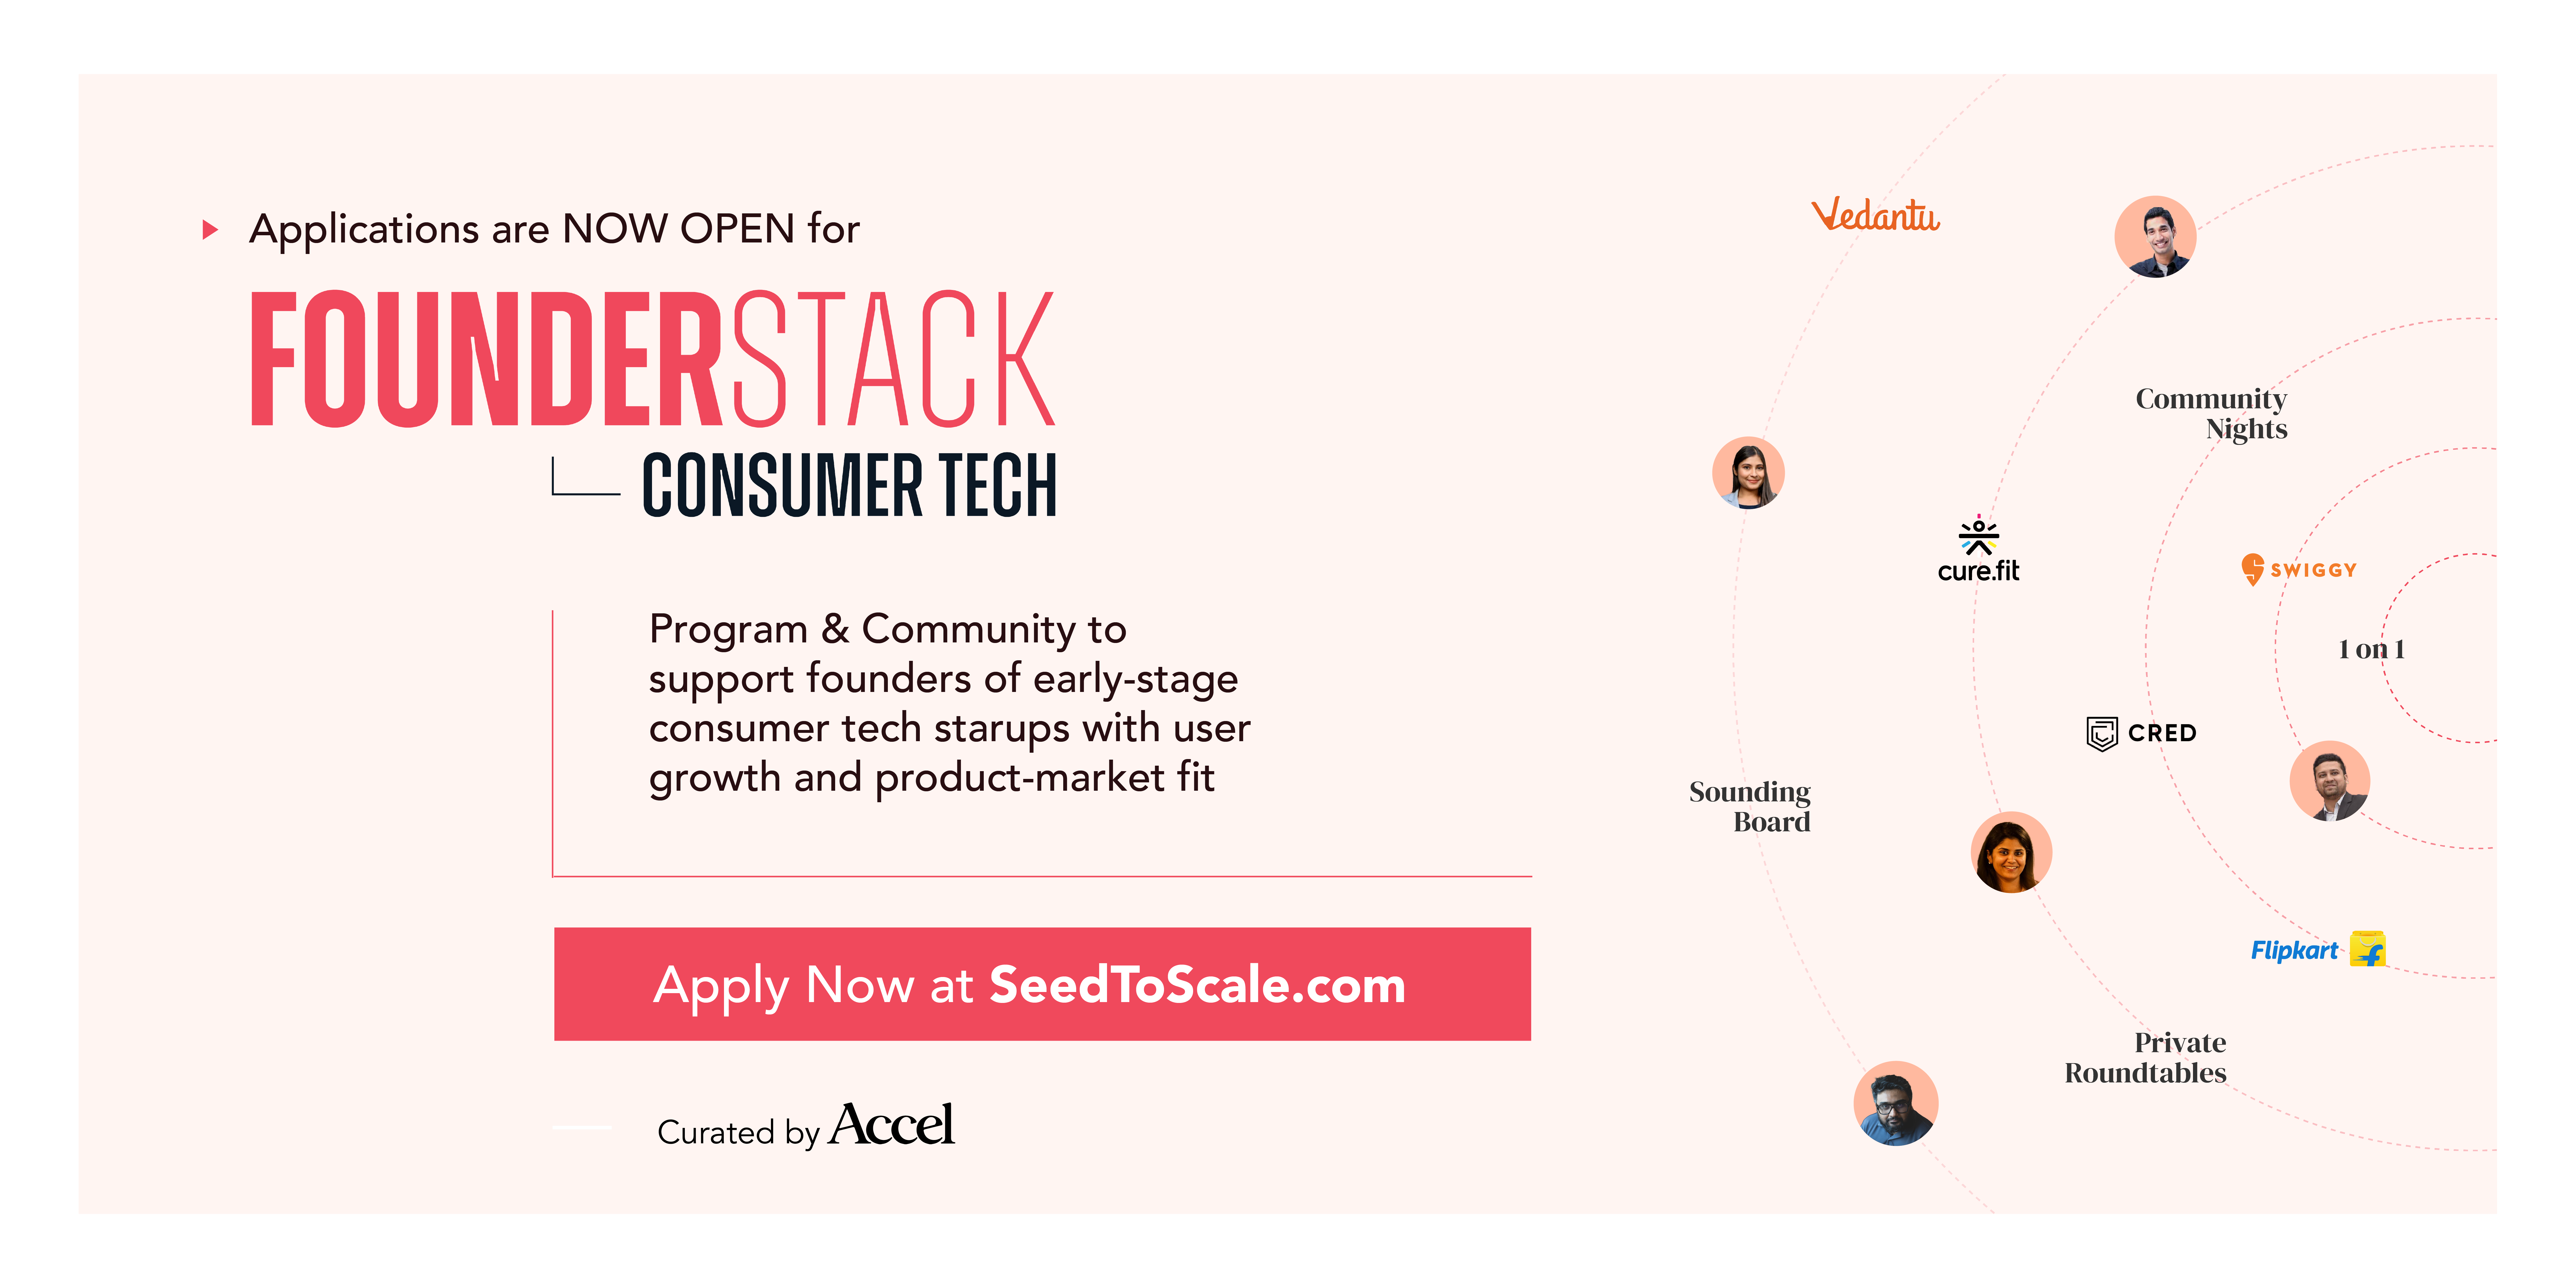 How can early-stage founders in India build their consumer startup with the help of Accel?